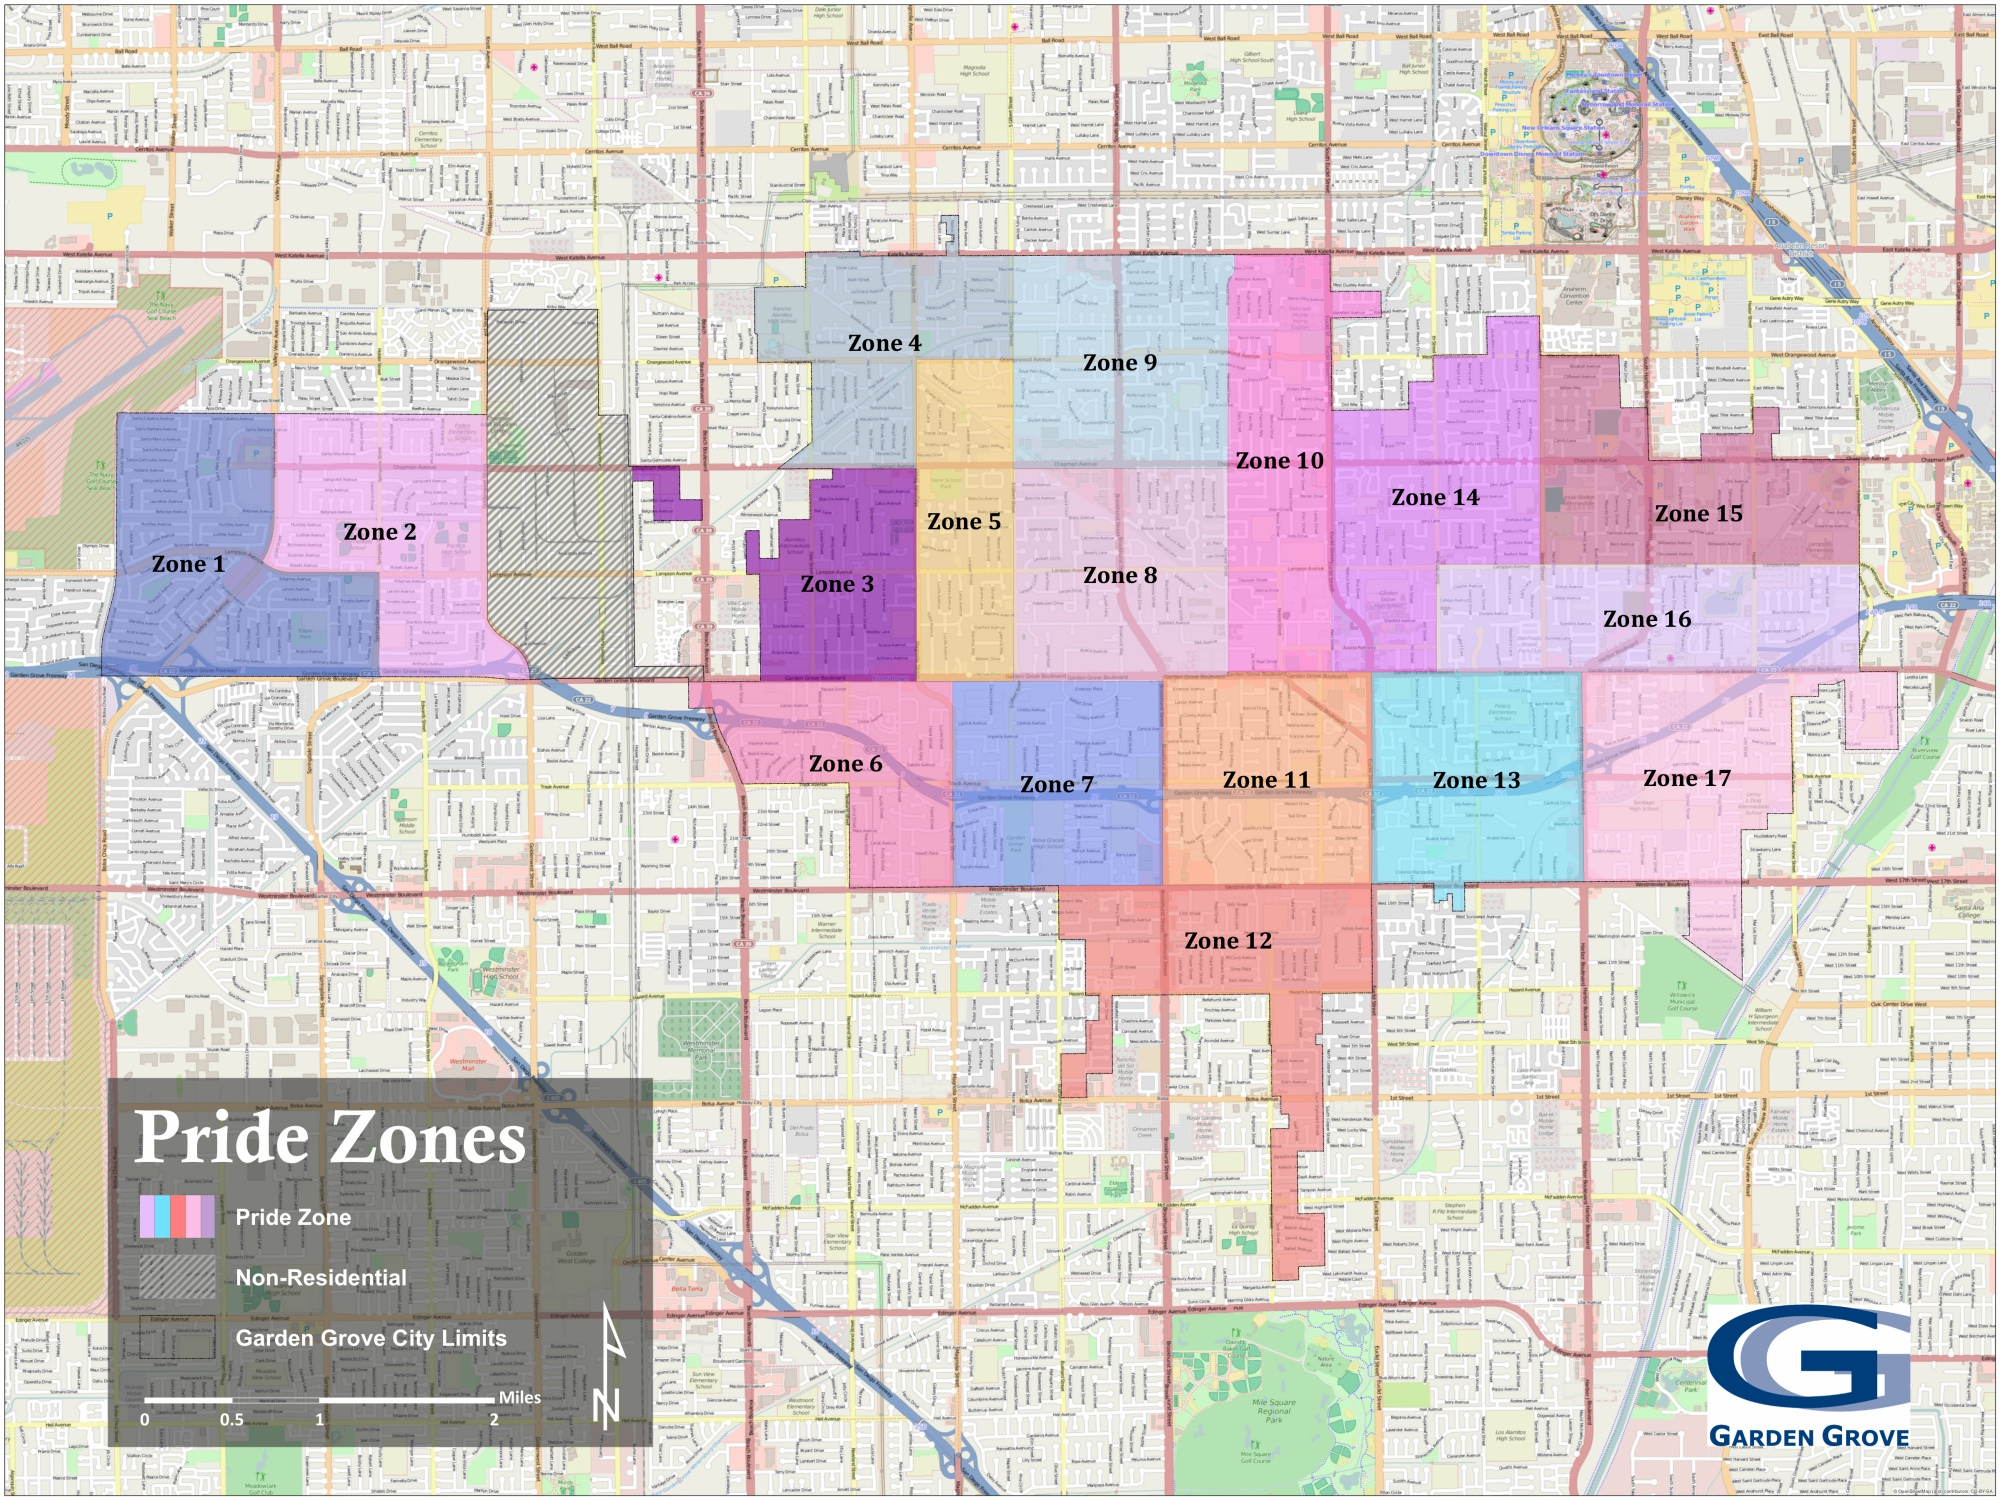 Garden Grove Pride Zone Map, 2015